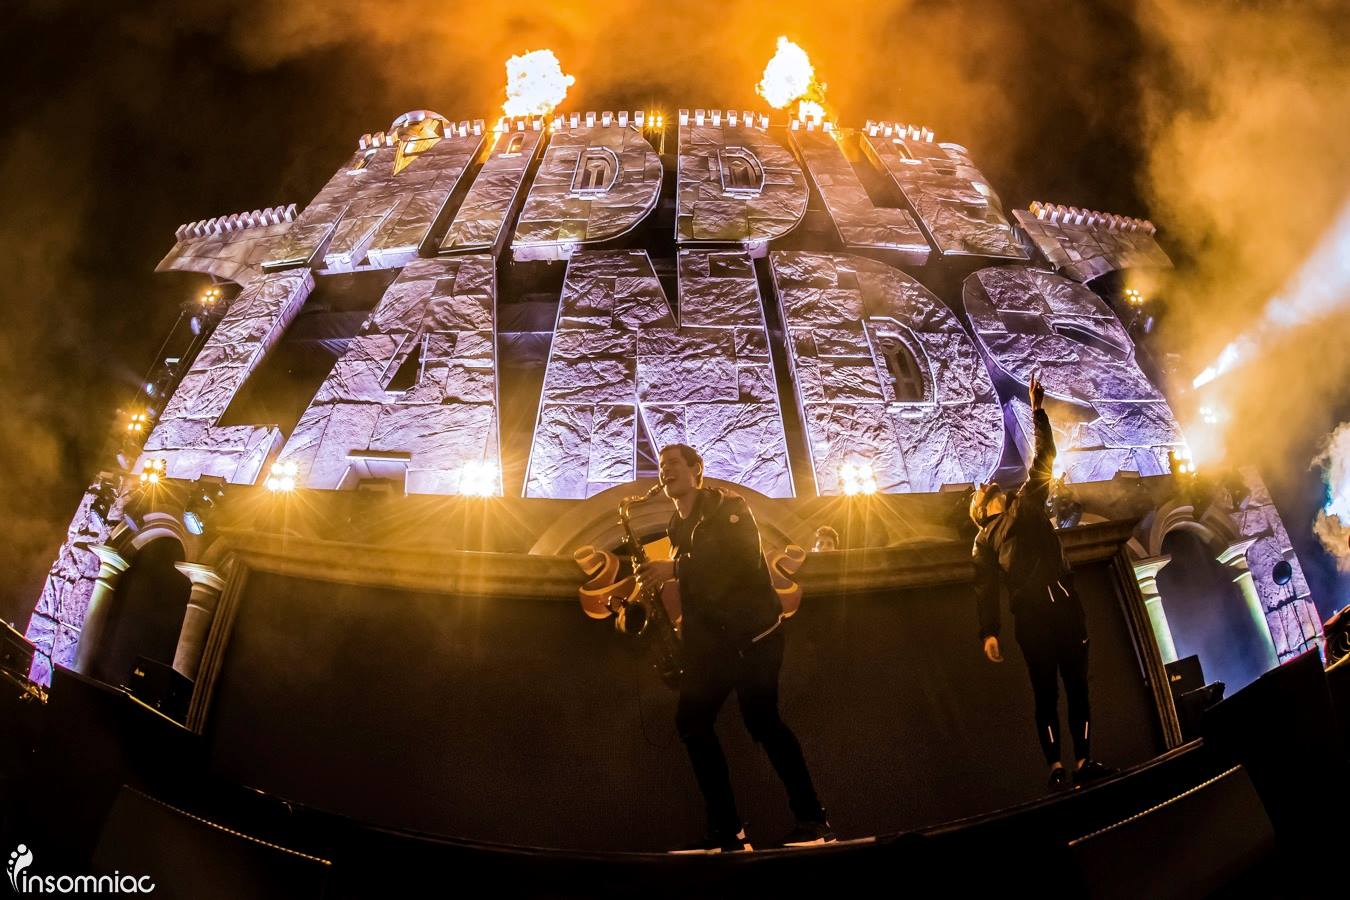 Image courtesy of Insomniac Middlelands